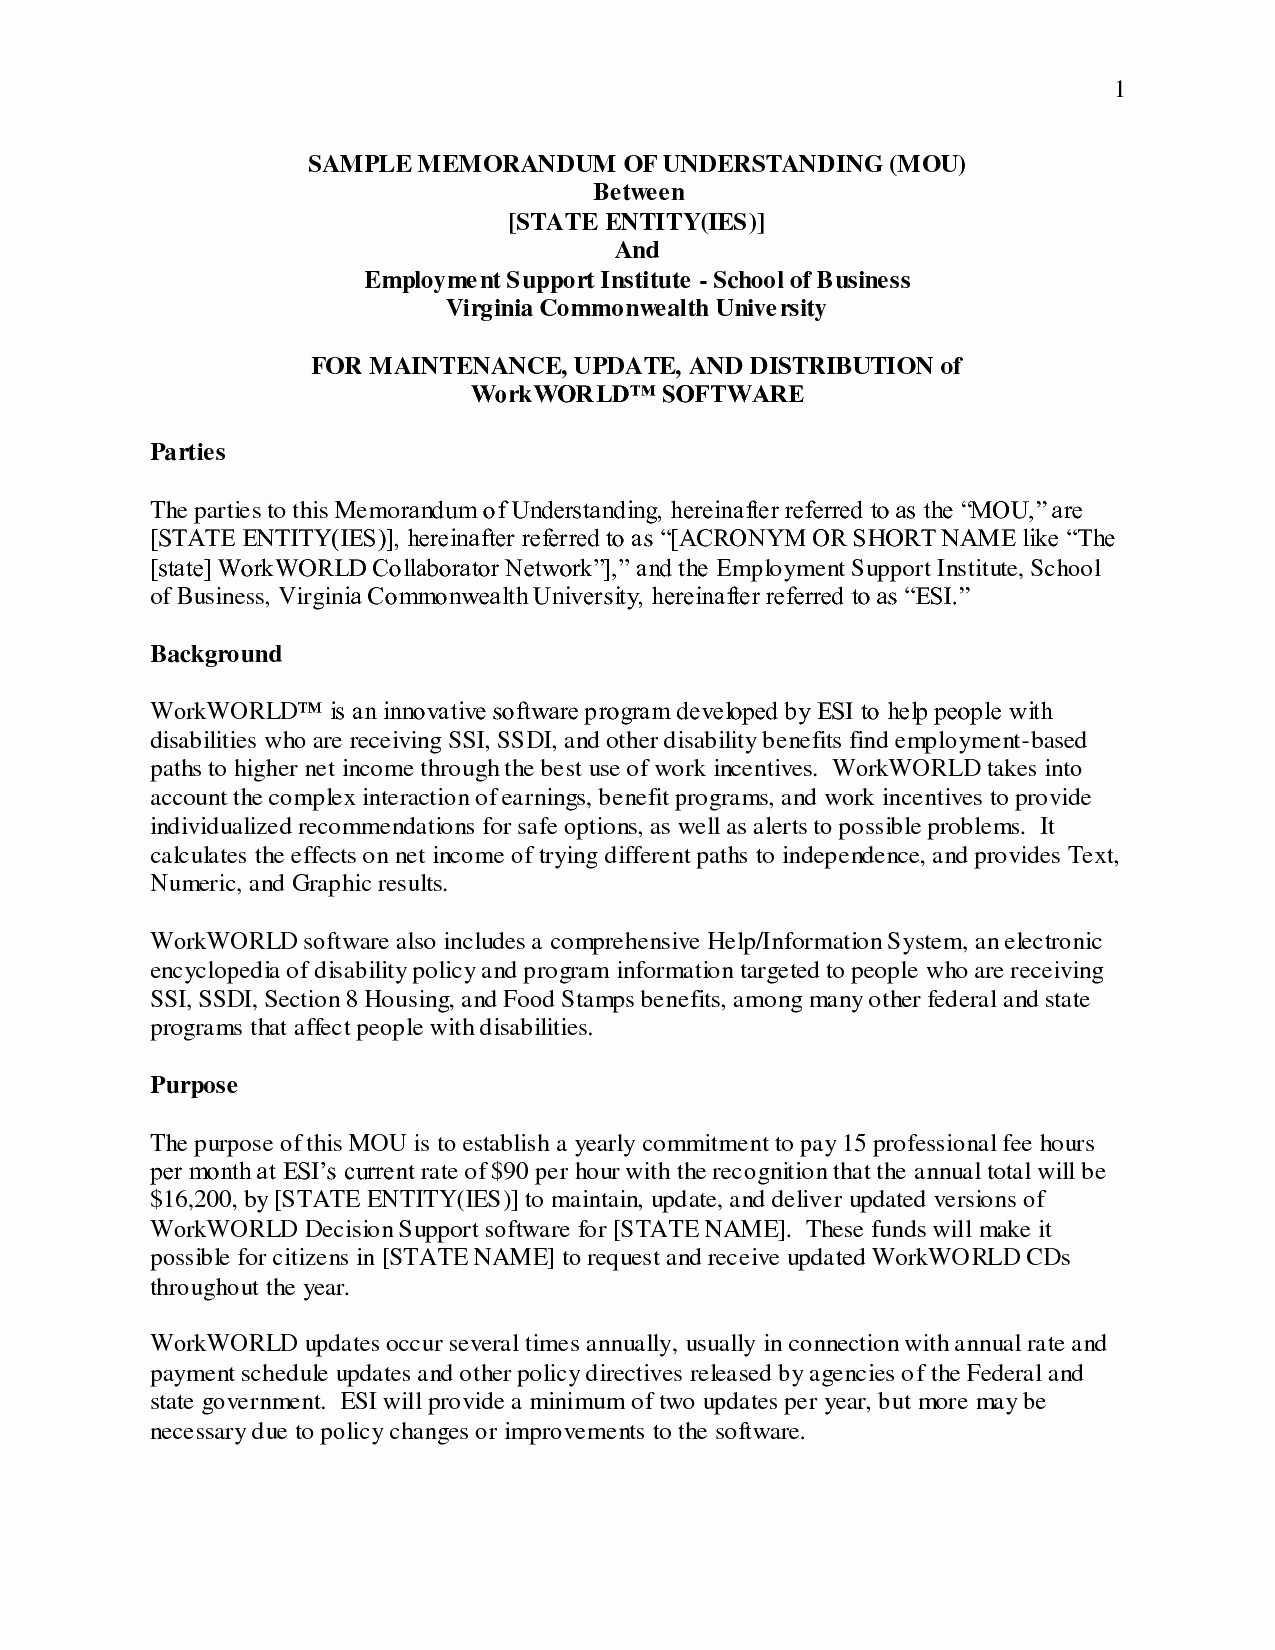 Letter Of Understanding Template Word - Business Partnership Separation Agreement Template Beautiful